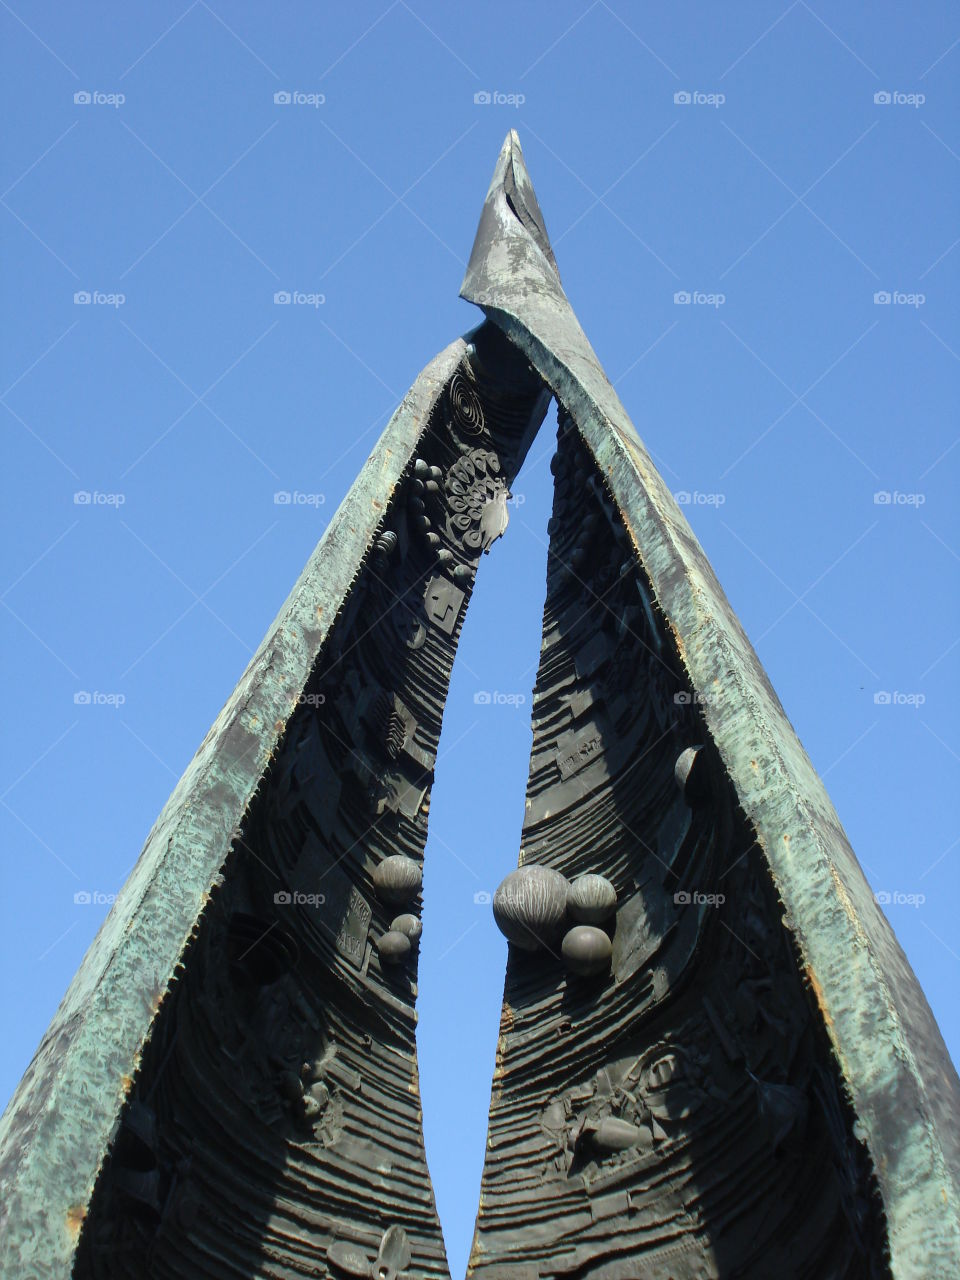 Sharp Top of a Budapest Statue